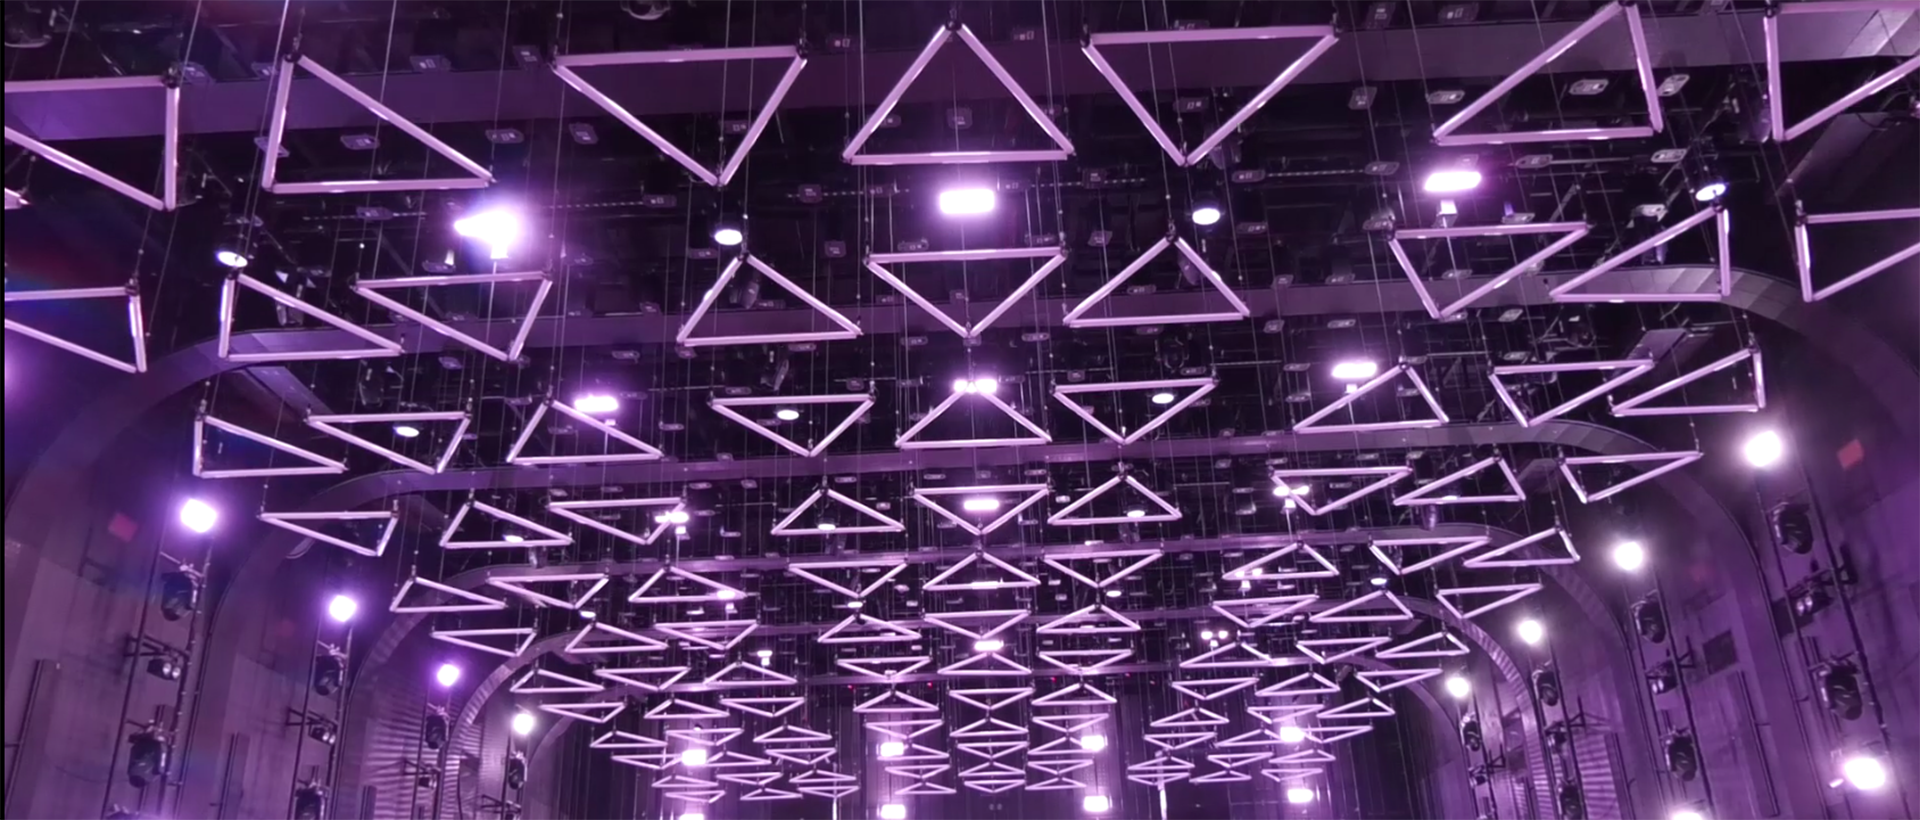 OG Club with whole club project solution for stage lights and kinetic lighting system